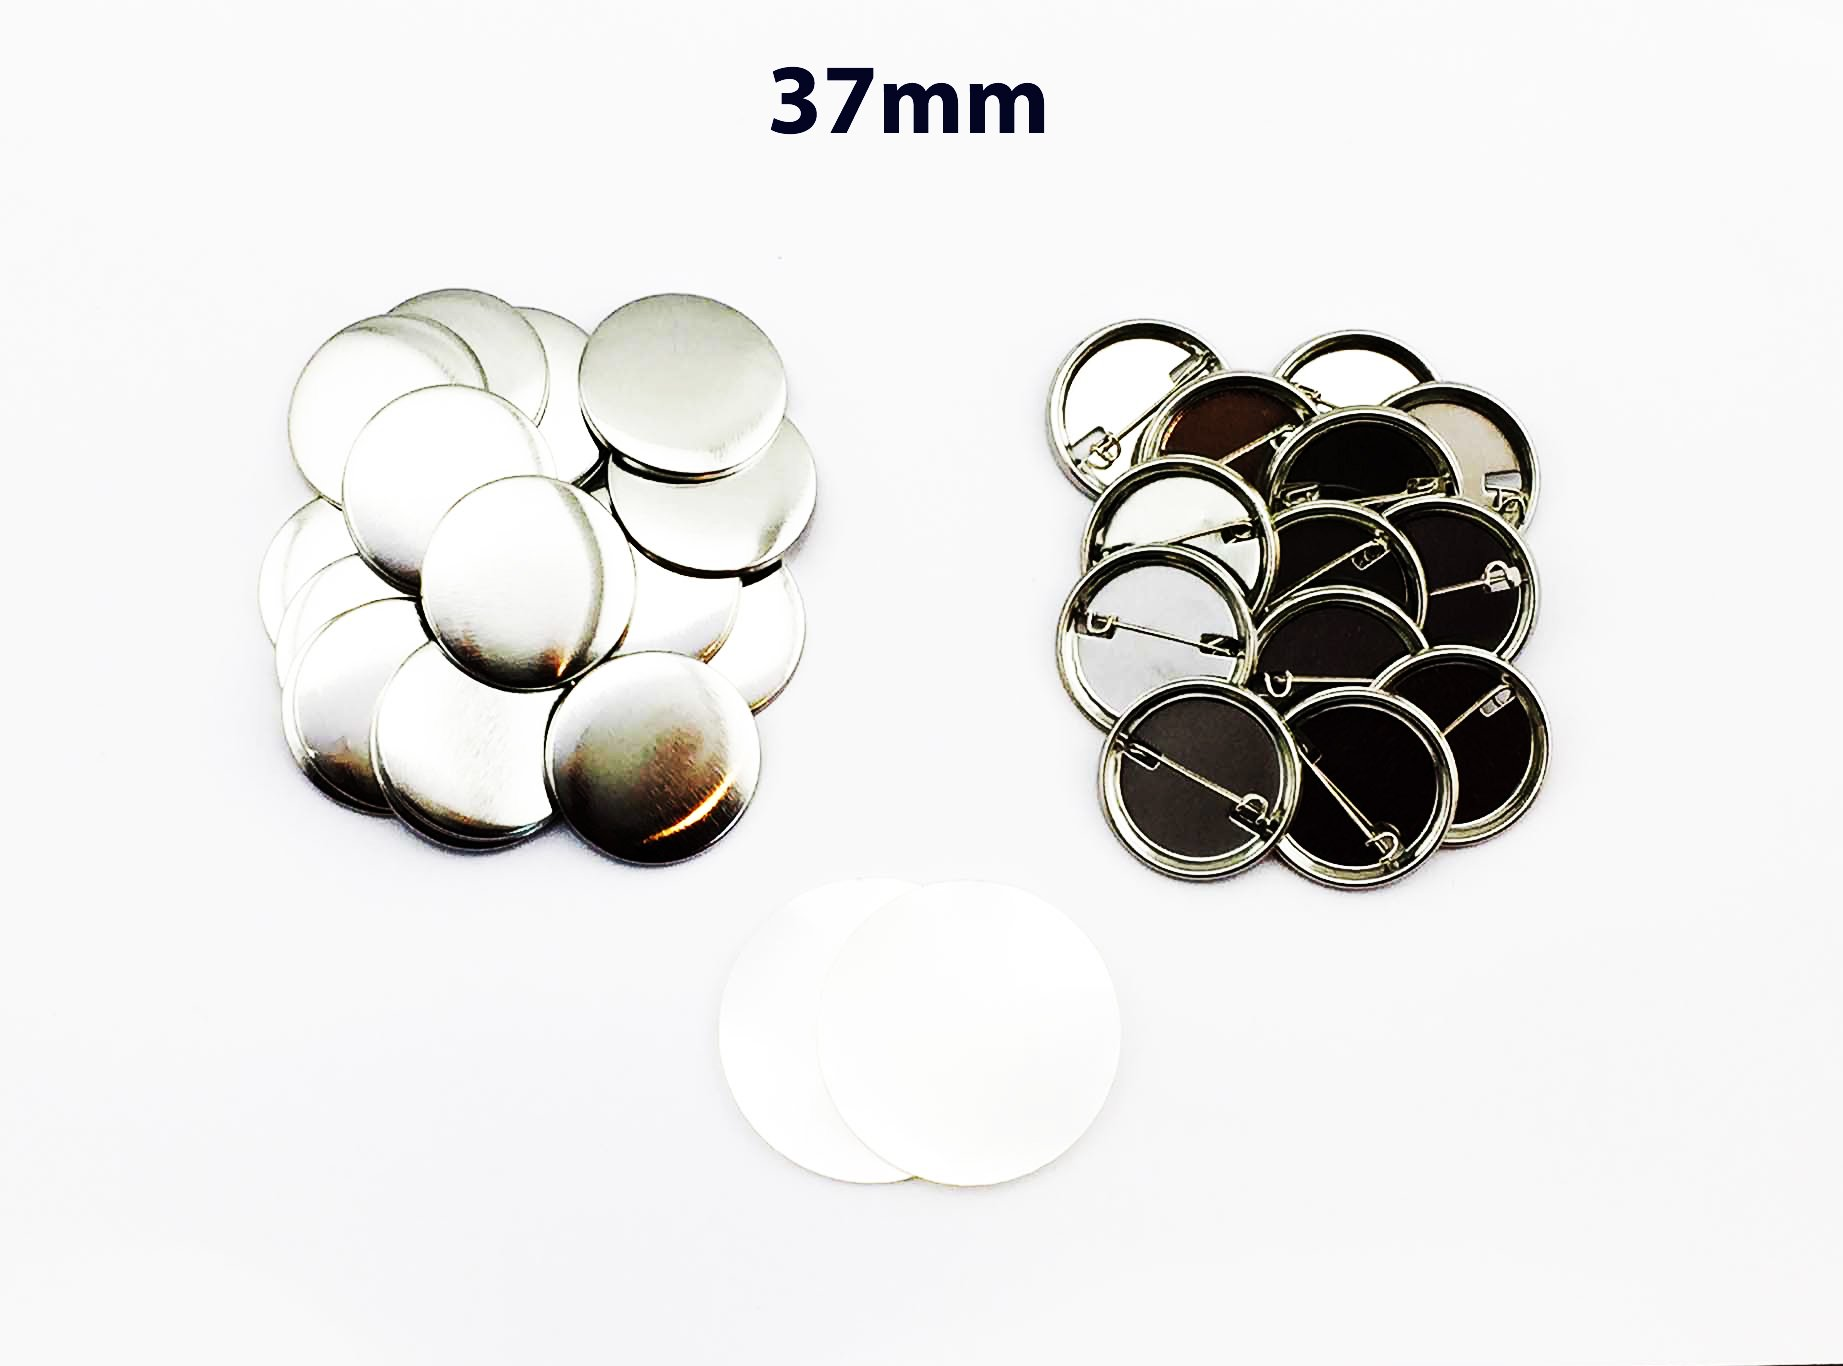 ChiButtons 37mm Metal Pin Badge Round (200Sets) Metric System by ChiButtons